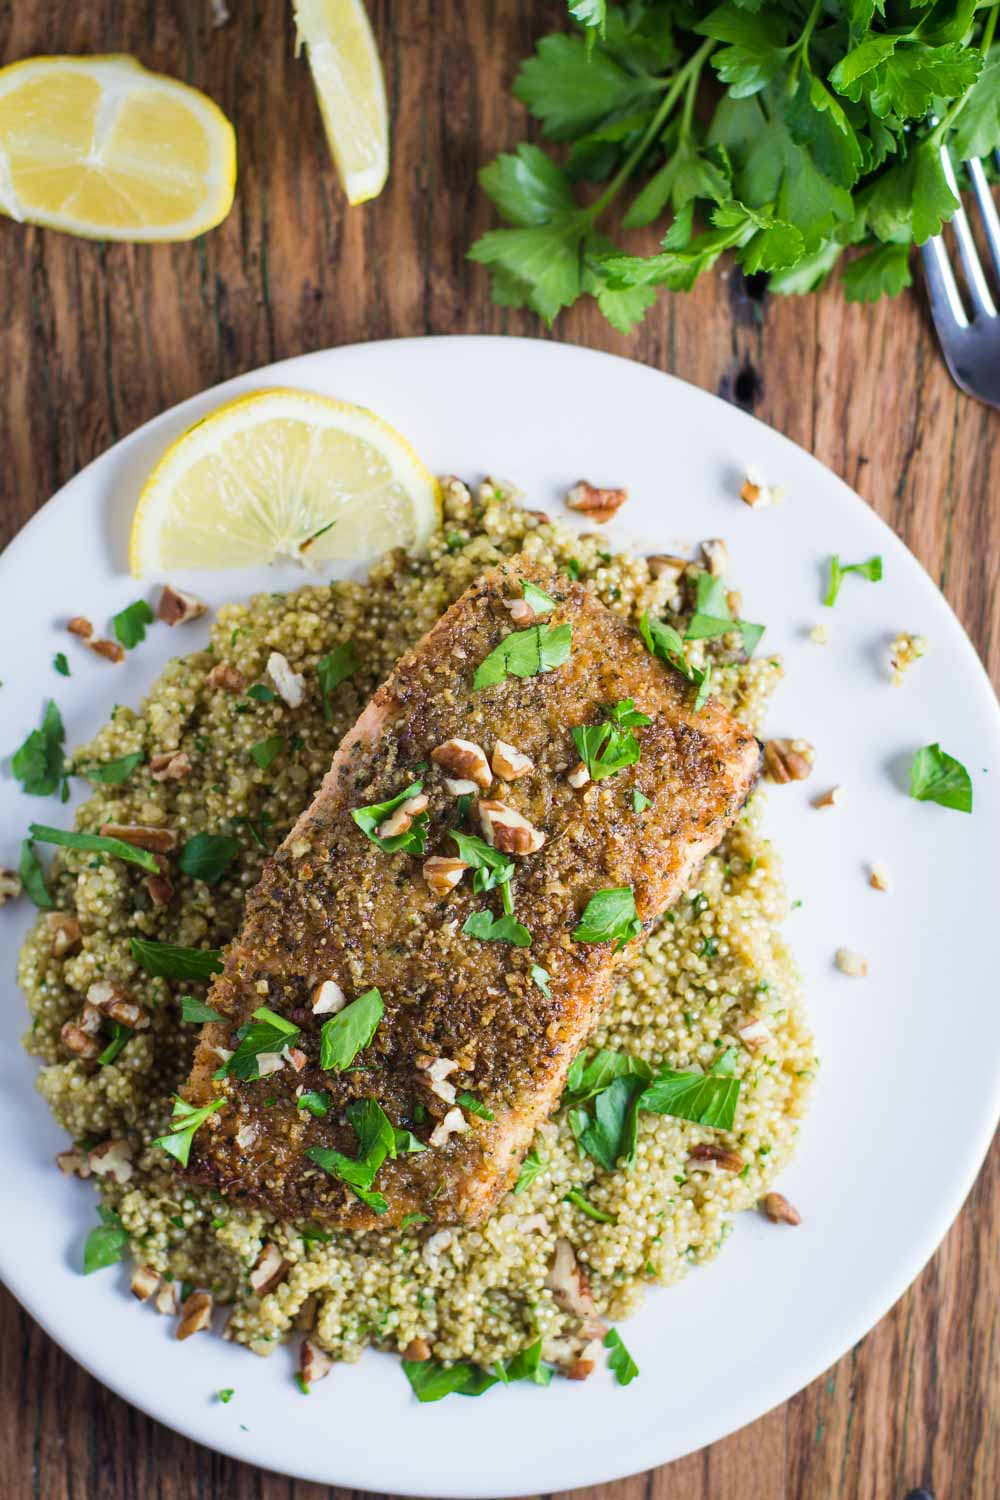 Pecan Crusted Salmon from B. Britnell. Get the recipe here. - The combination of pecans and salmon is truly delightful.